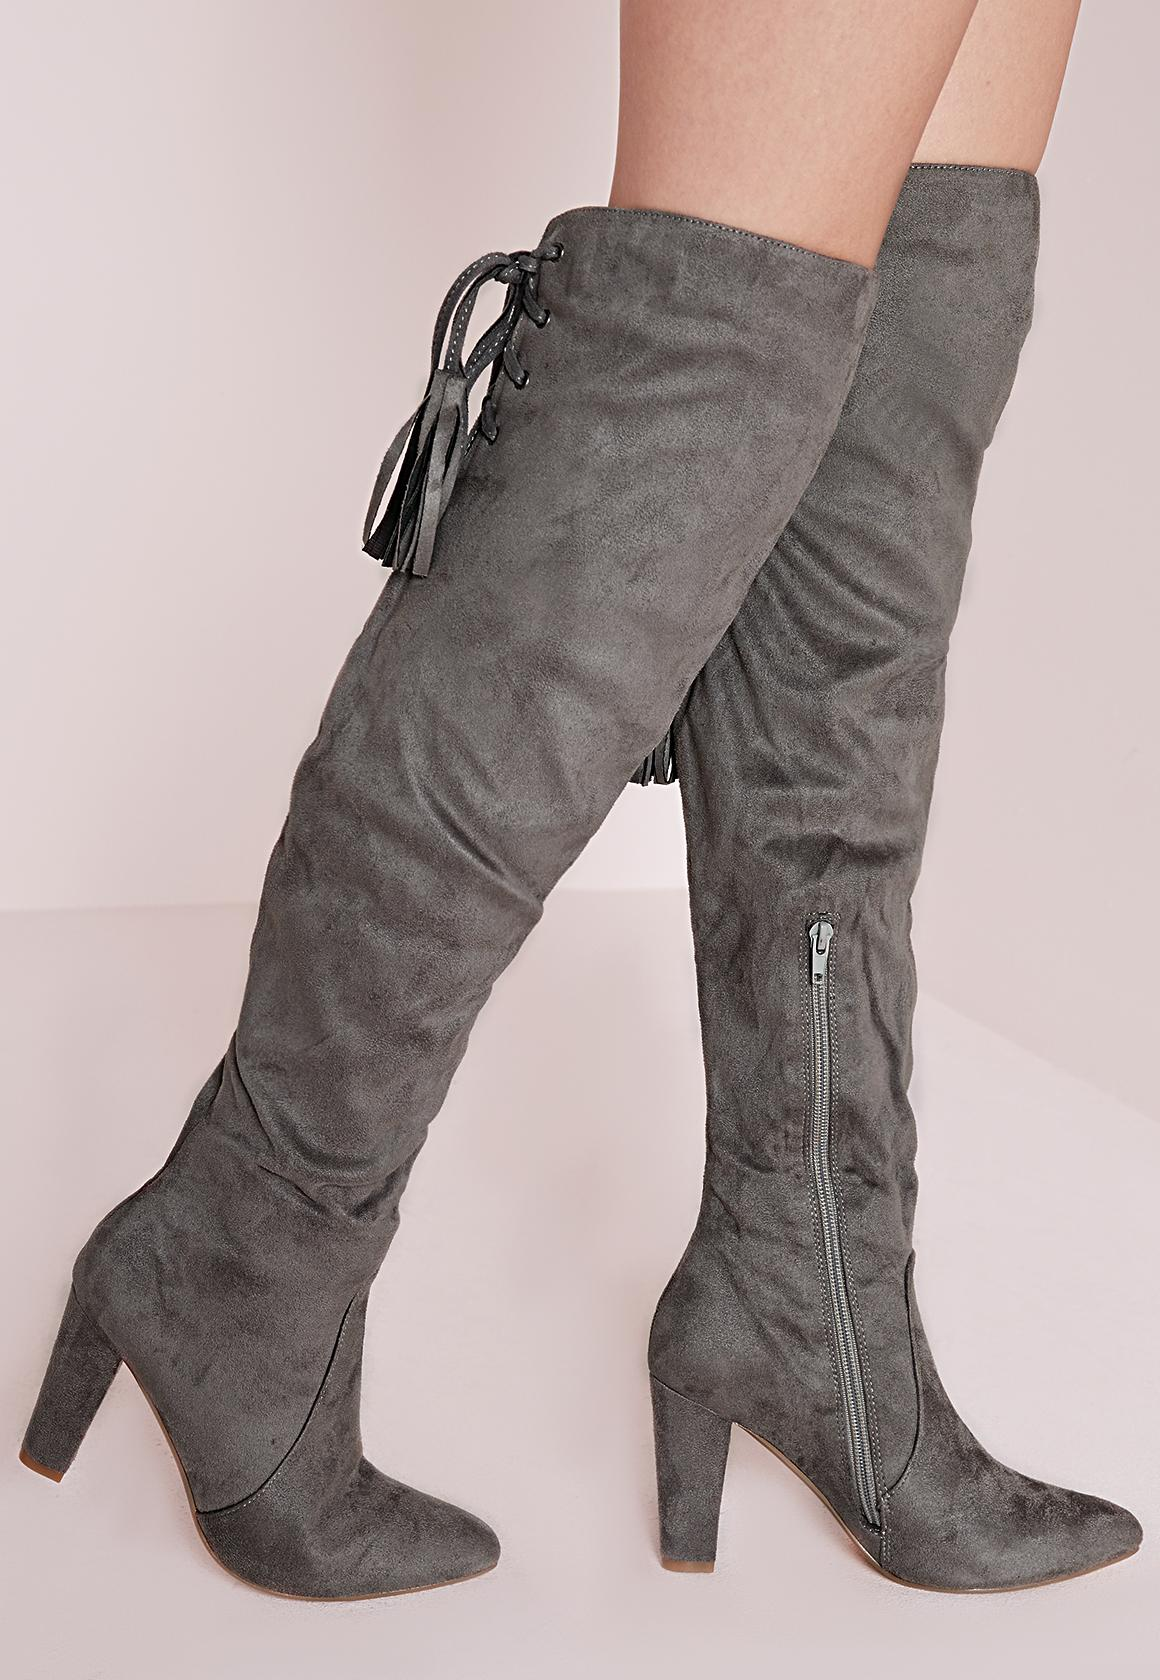 b0ebc5e6eee Heeled Knee High Tie Back Boots Grey